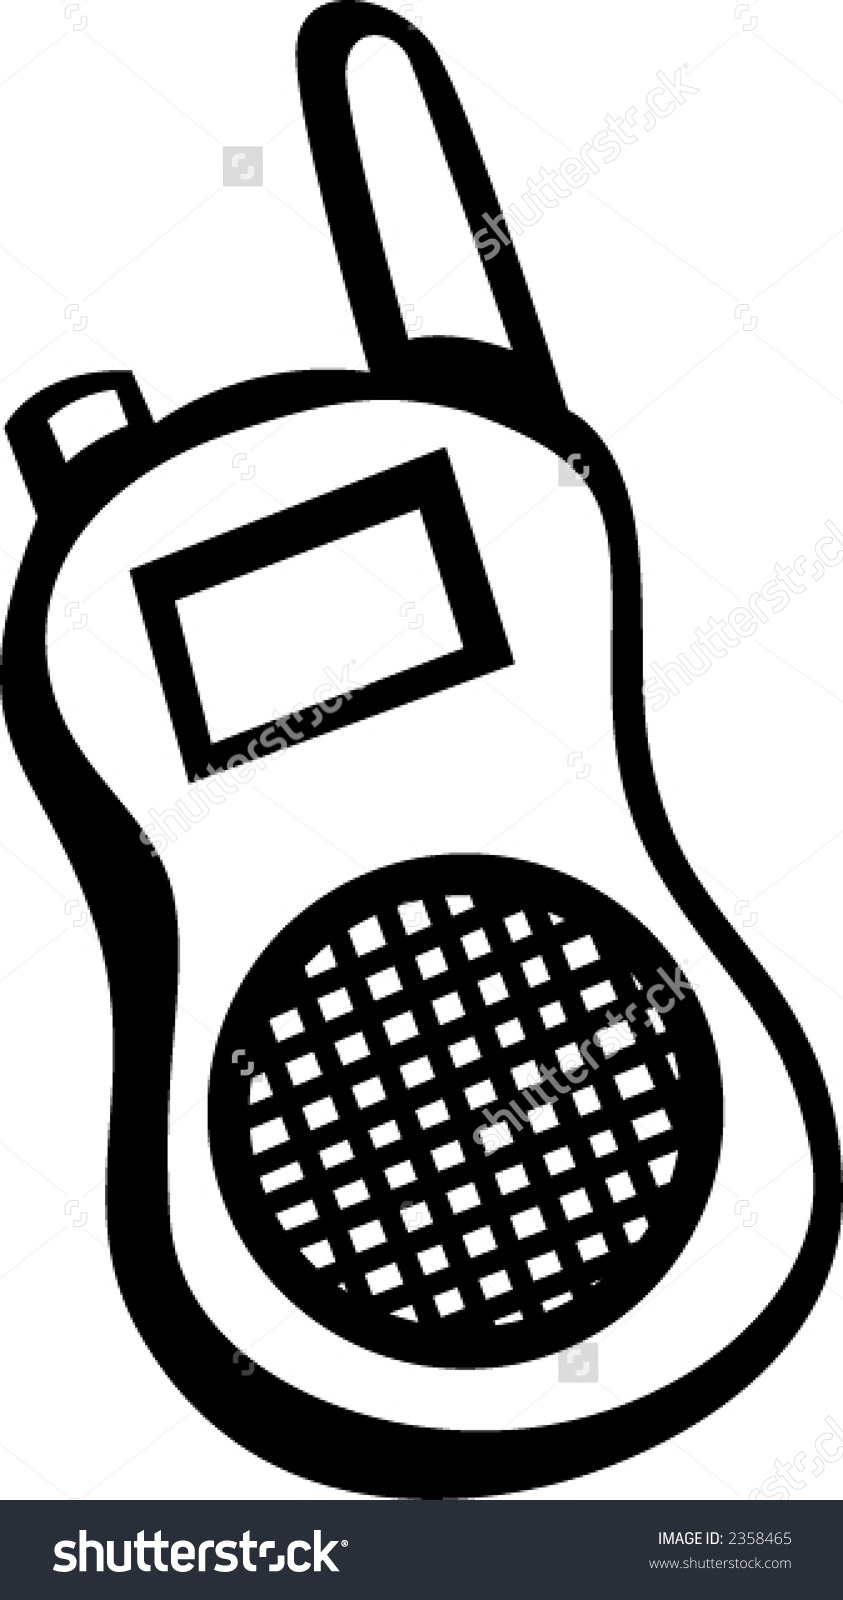 Walkie Talkie Clip Art.